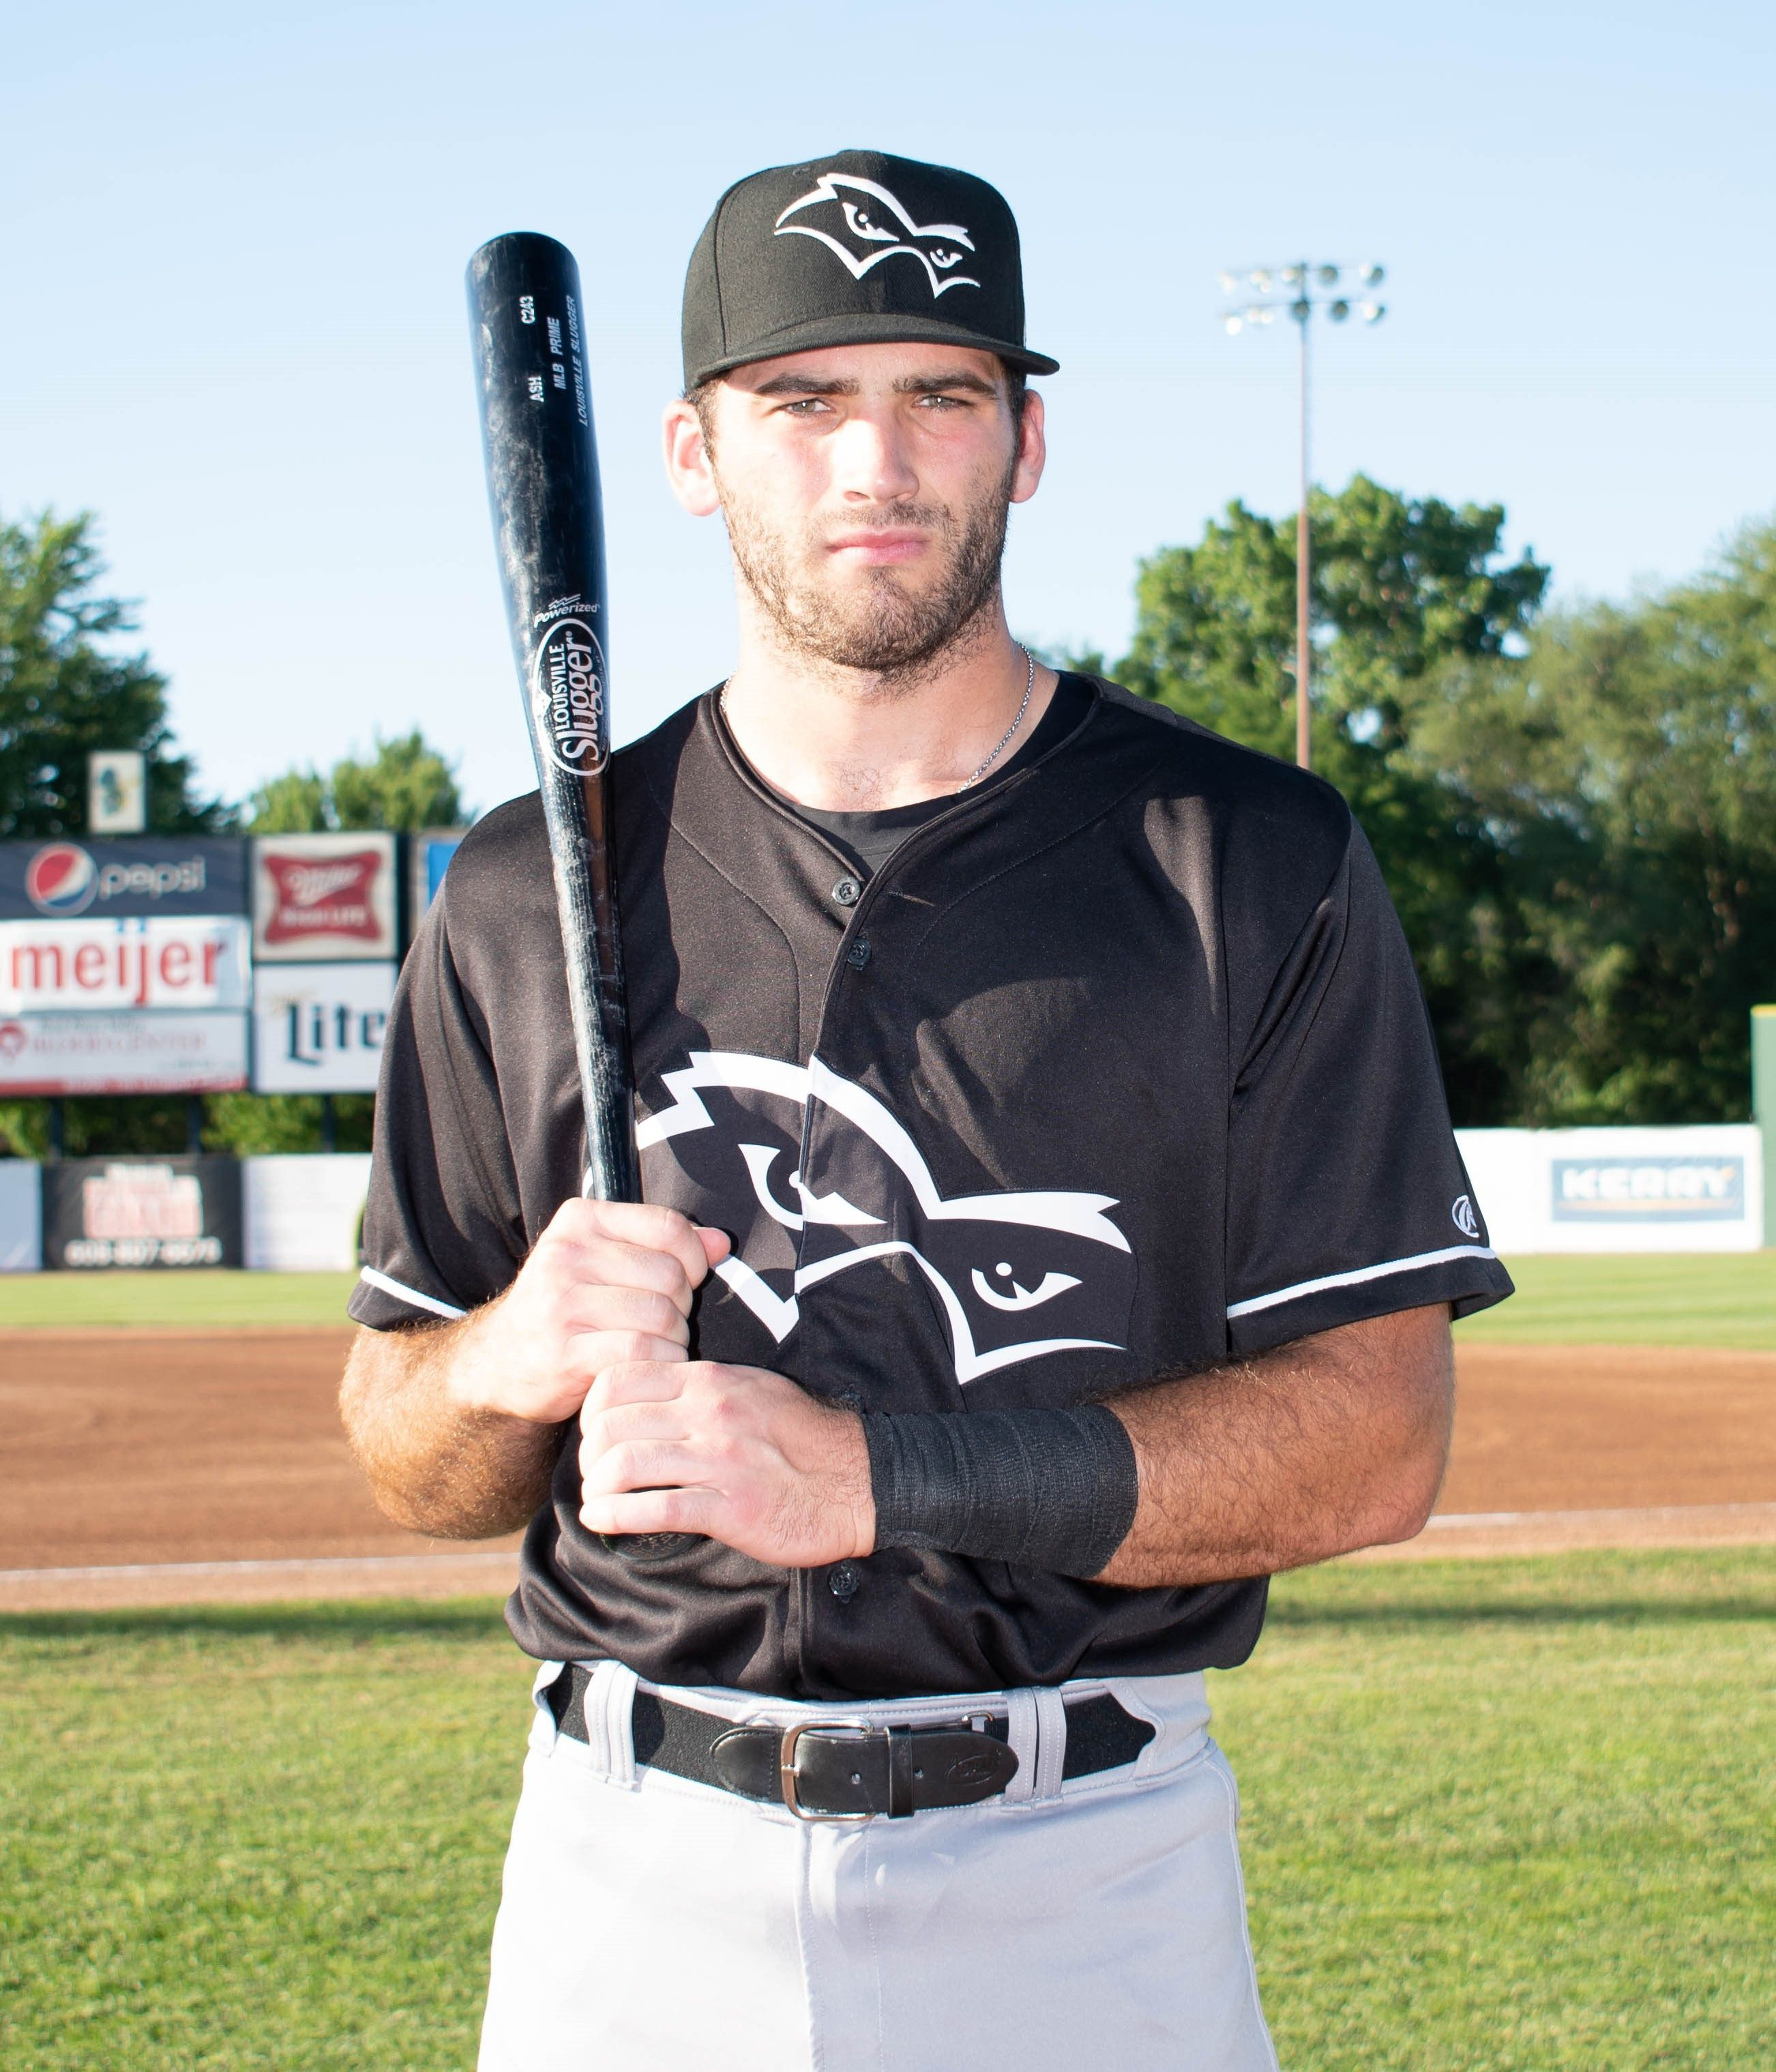 Former Kimberly standout Scott Schreiber is batting .353 through 10 games for the Quad Cities River Bandits.